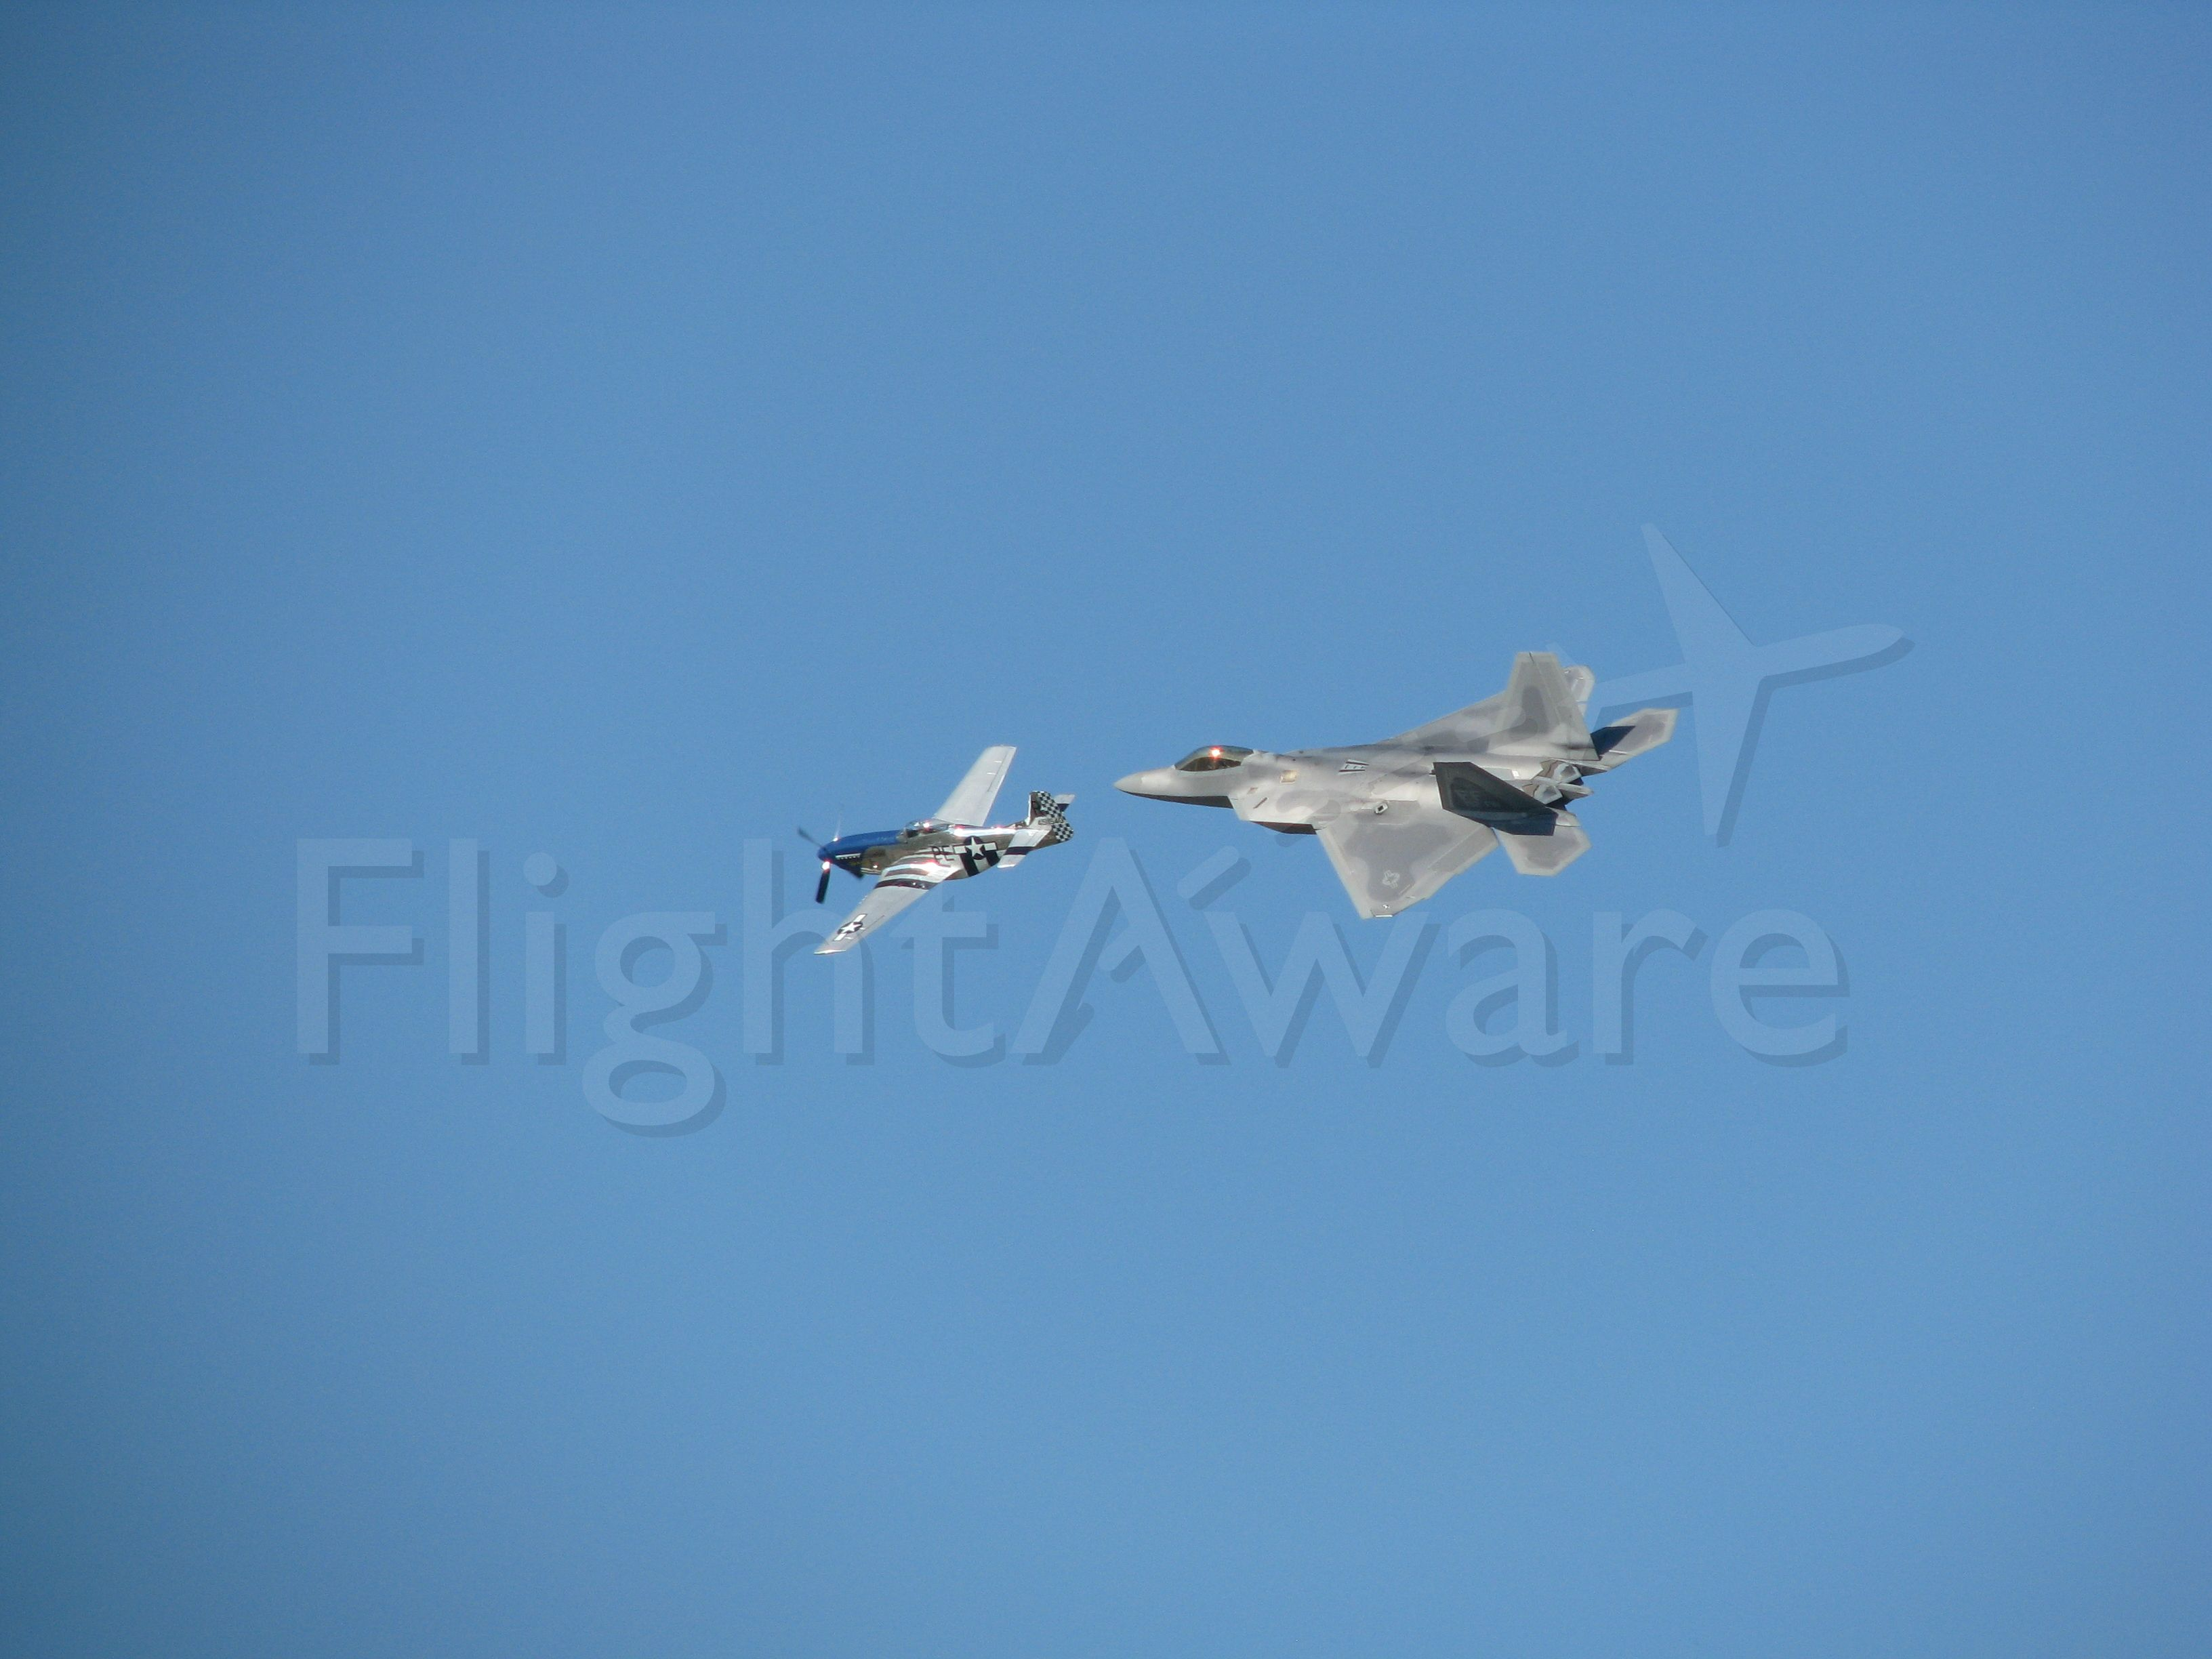 — — - P-51 Mustang and F-22 Raptor fly formation at Oshkosh 2008.